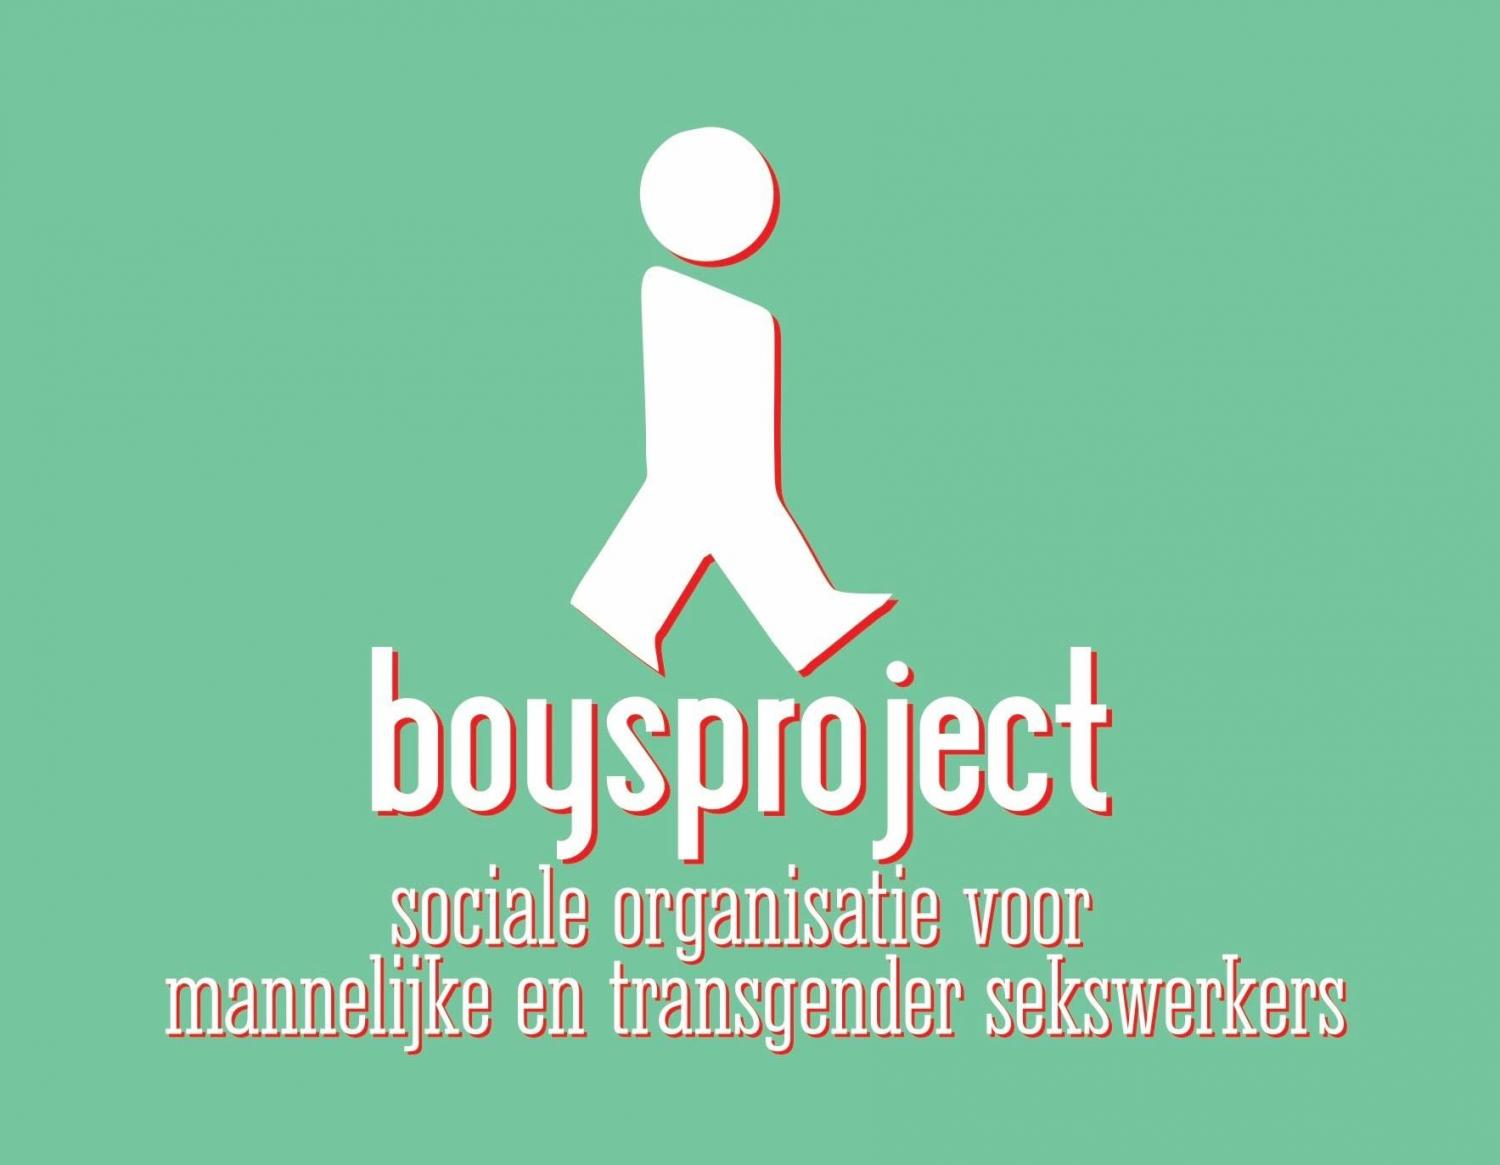 Boysproject logo